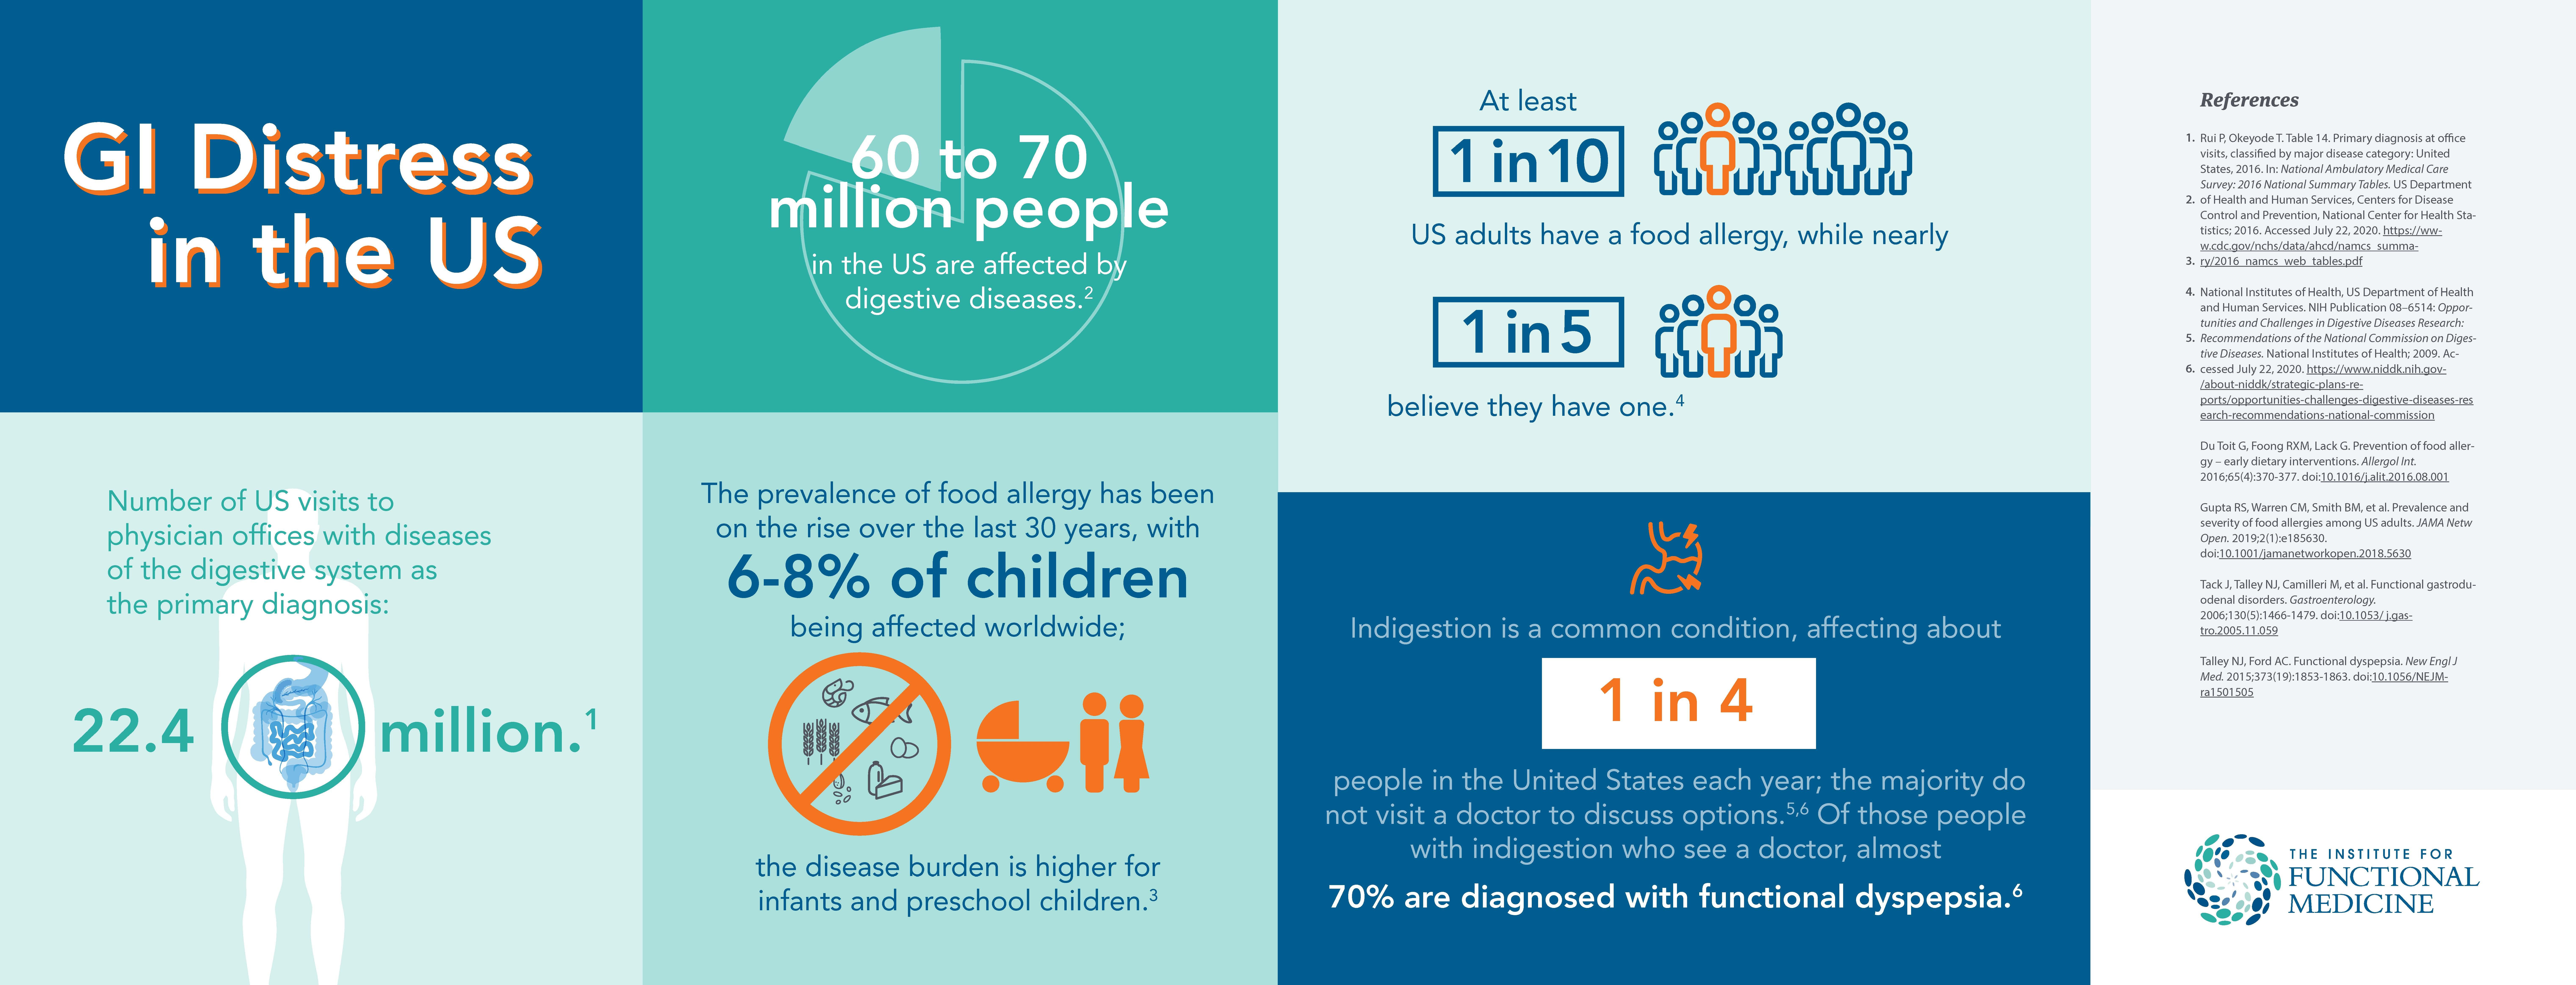 GI Distress in the US Infographic